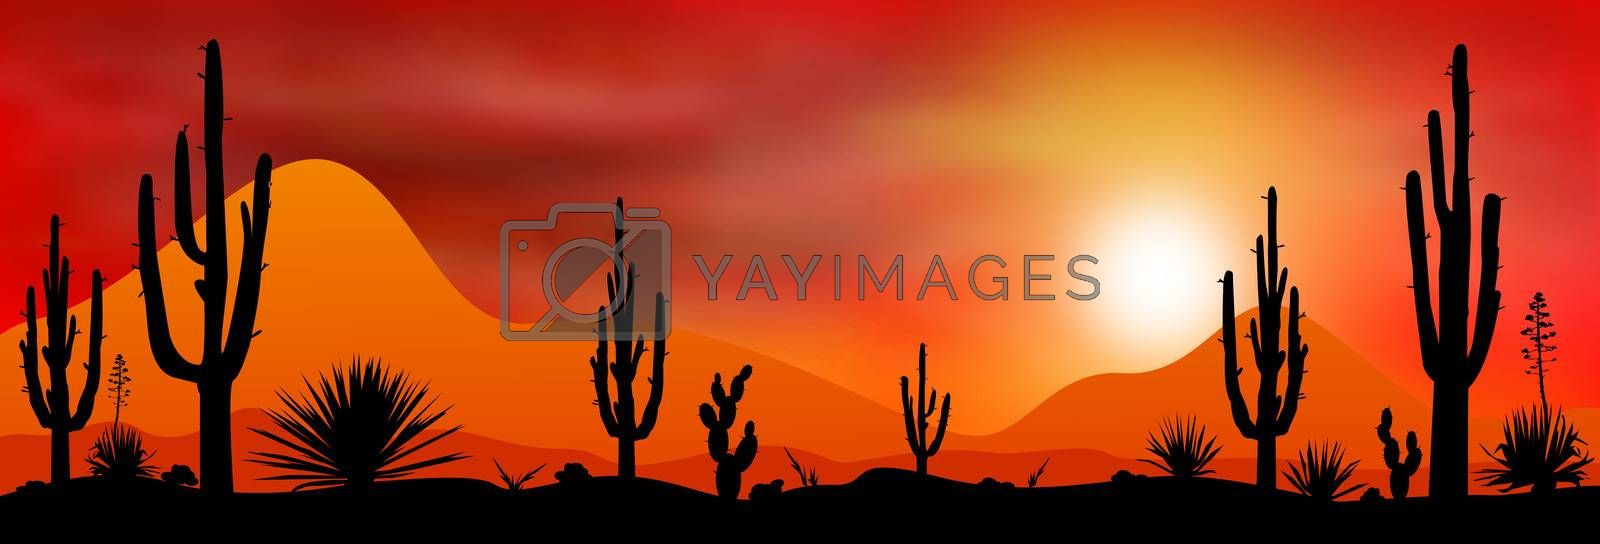 Sunset sun in a stony desert. Silhouettes of stones, cacti and plants. Desert landscape with cacti. The stony desert.